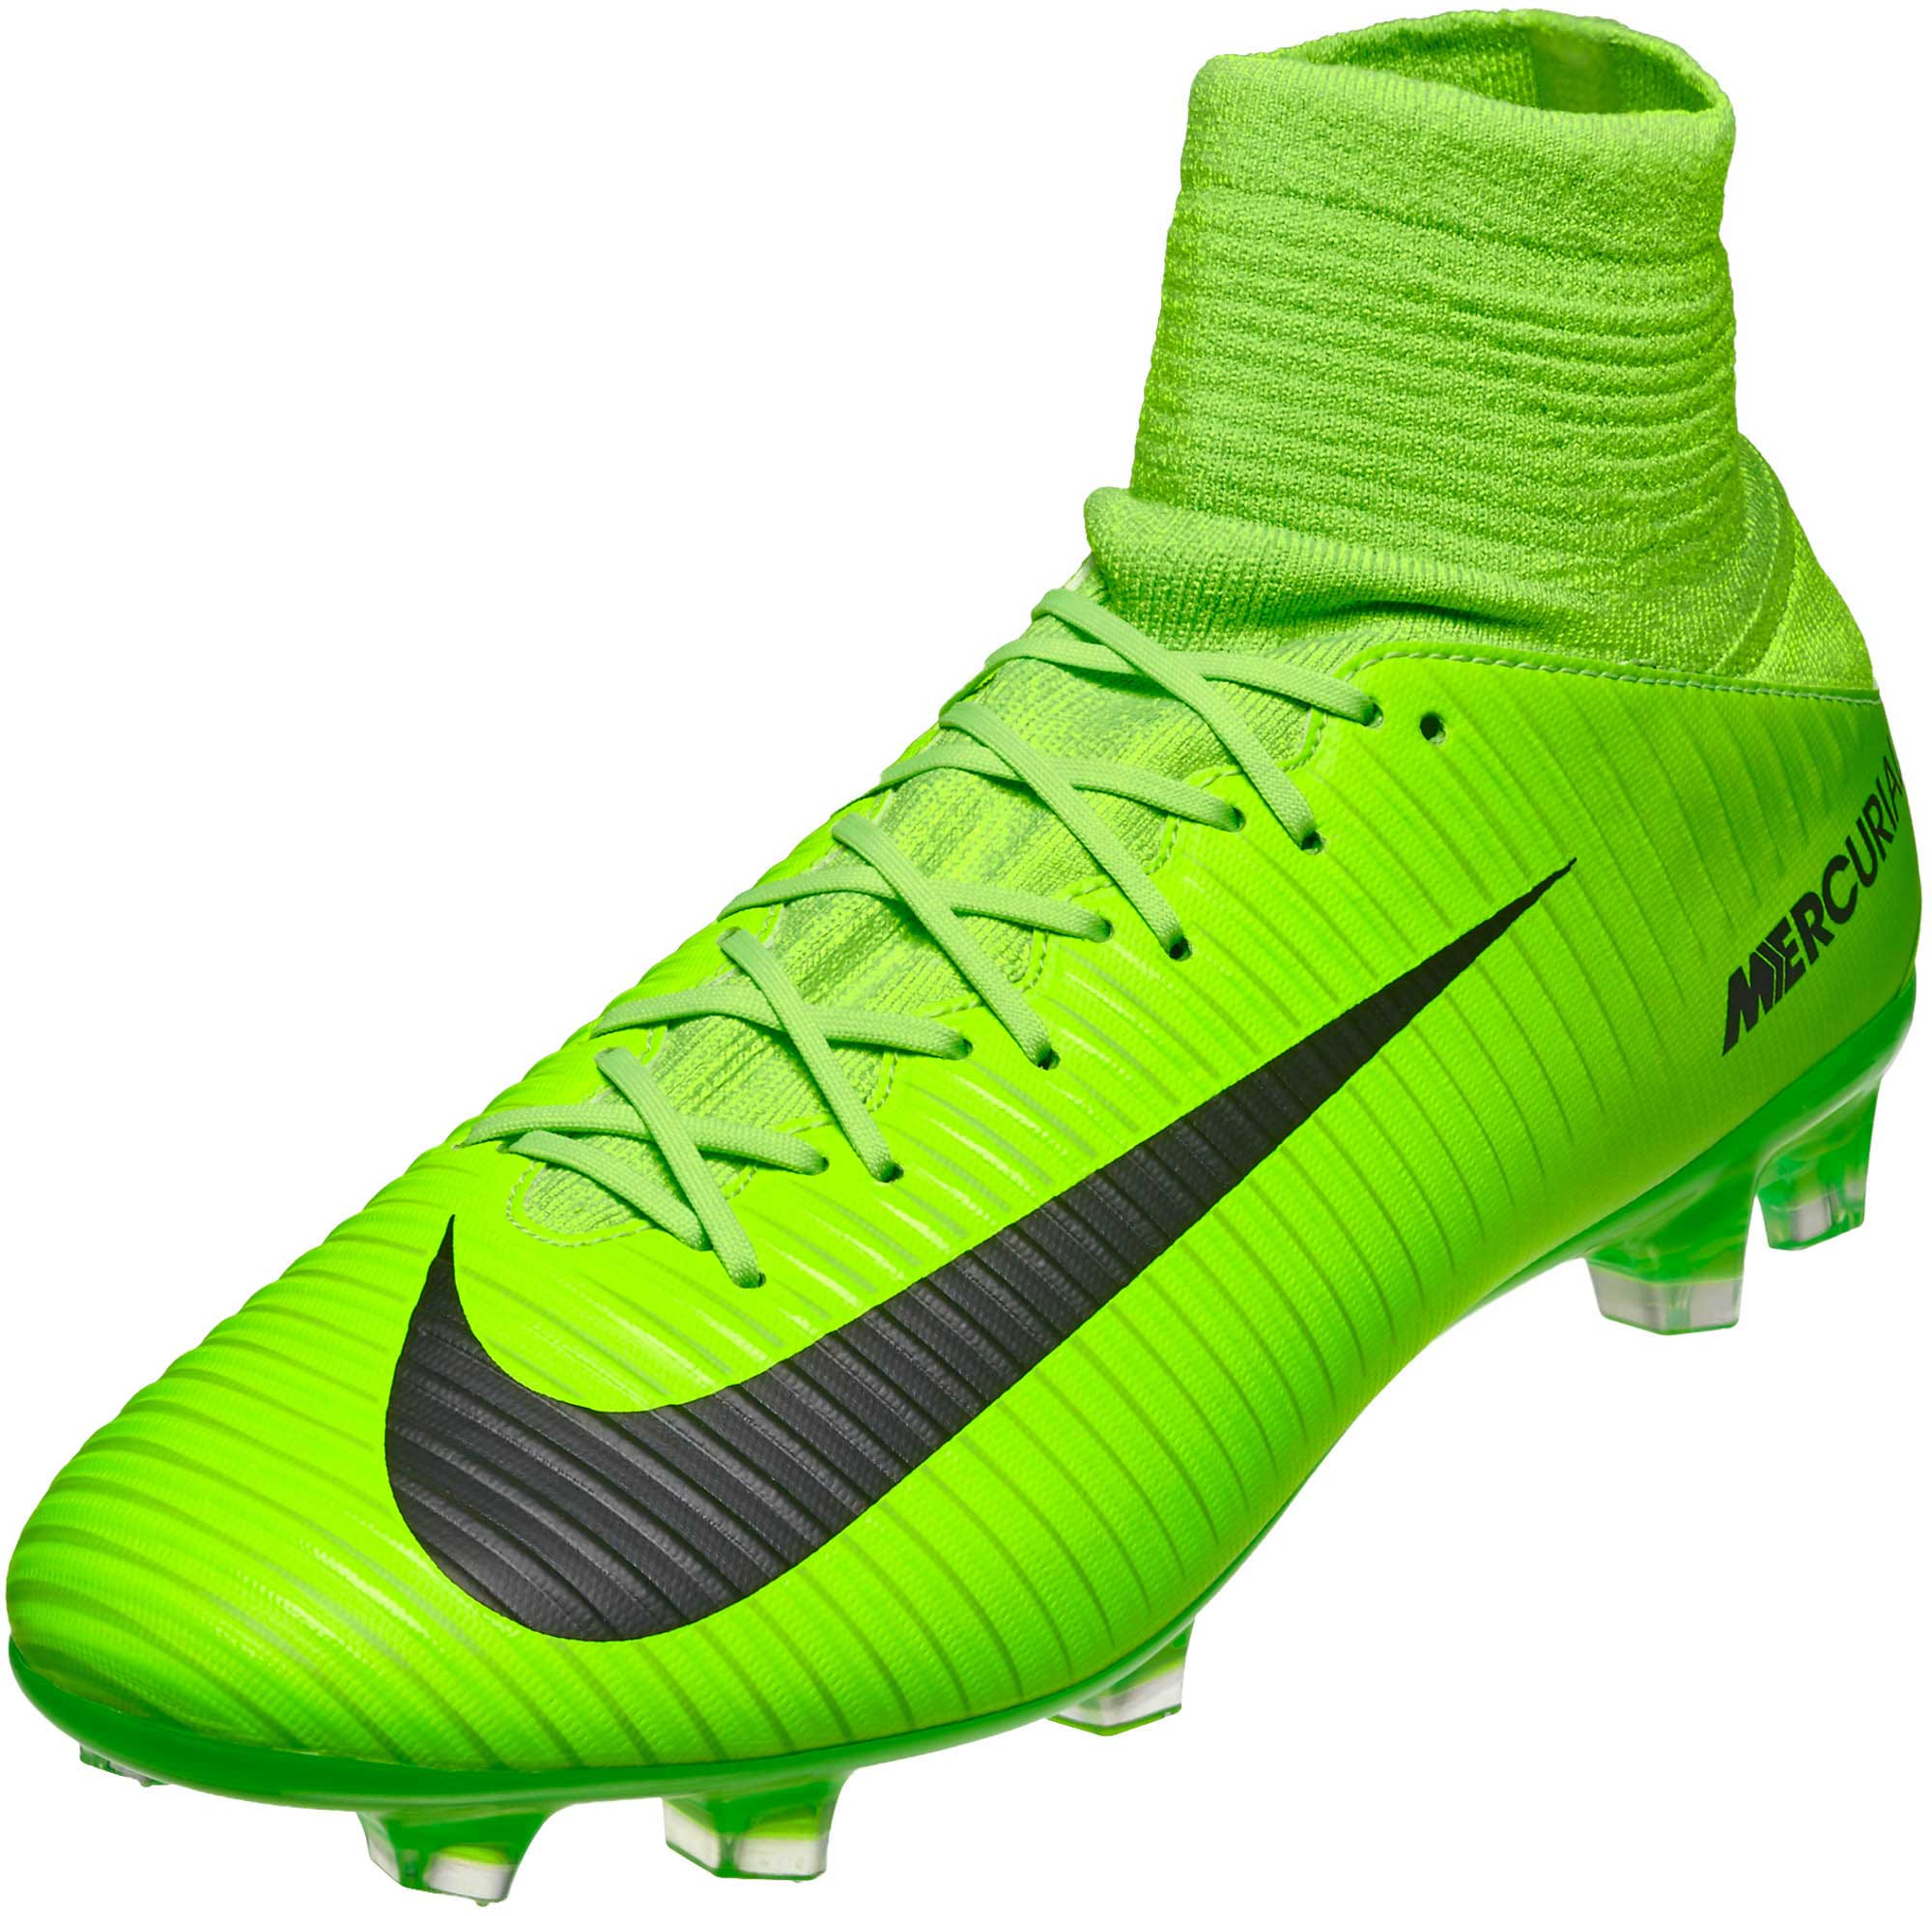 timeless design 578ed 10087 Nike Mercurial Veloce III DF FG – Electric GreenFlash Lime